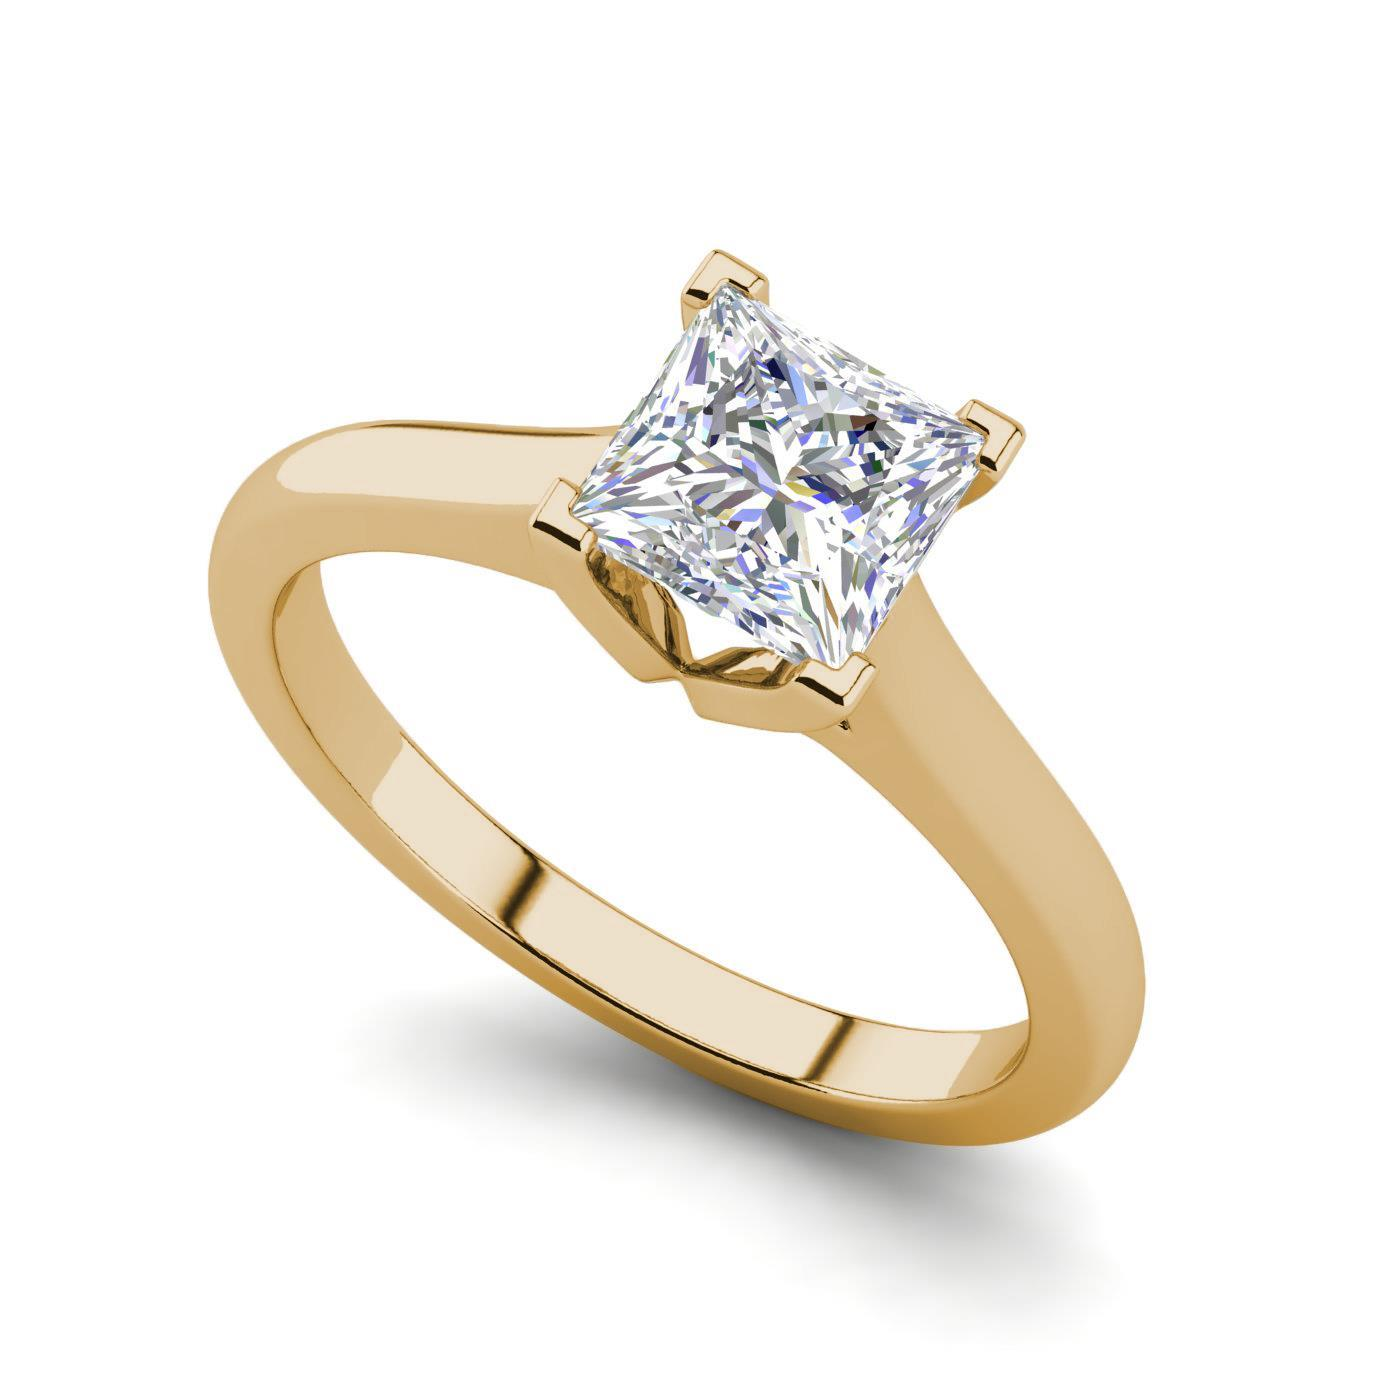 Solitaire 0 5 Carat Vvs2 F Princess Cut Diamond Engagement Ring Yellow Gold Ebay